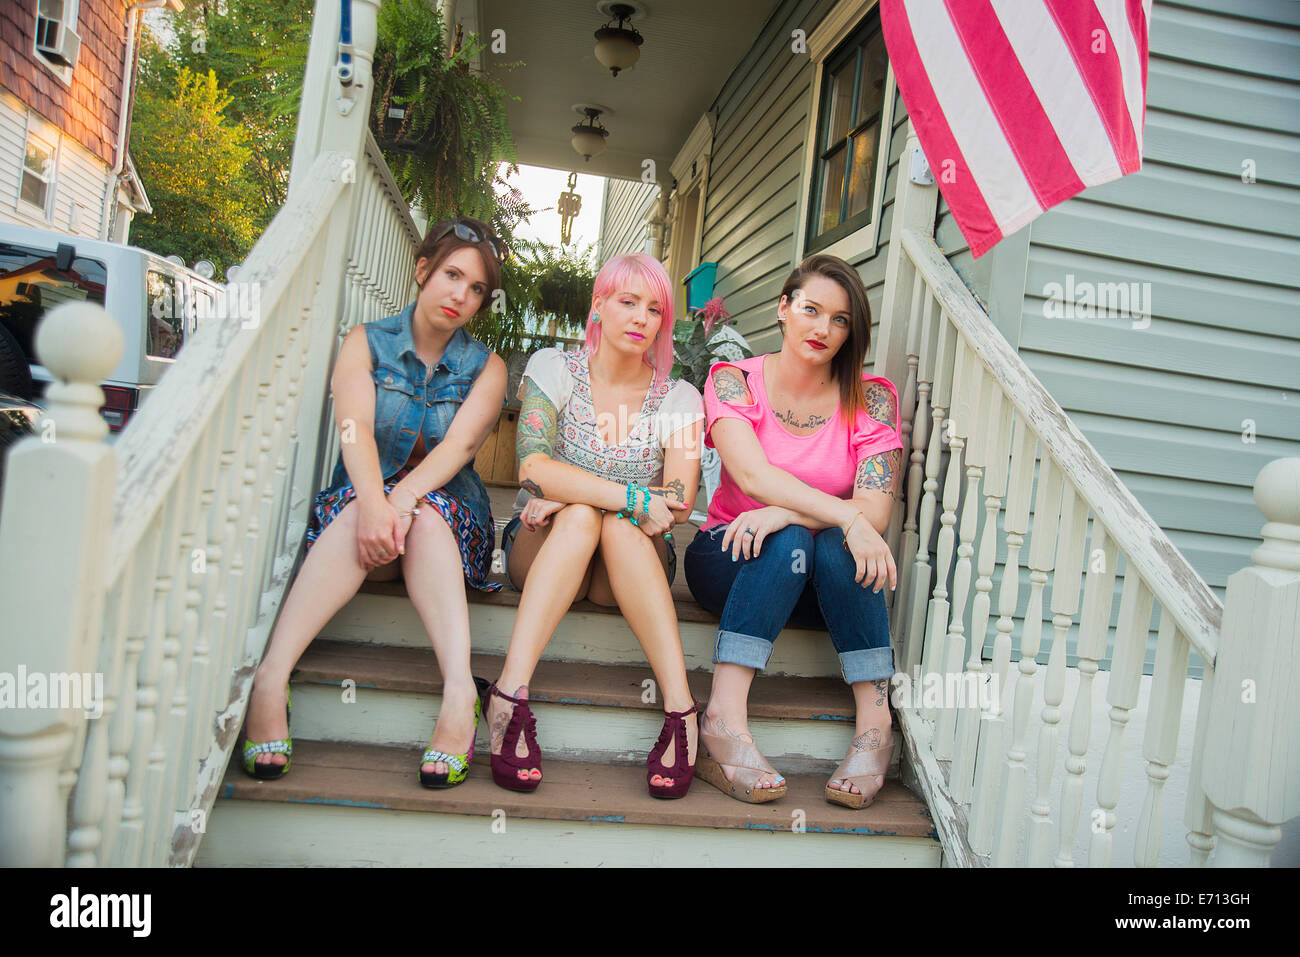 Portrait of young female friends sitting on porch steps - Stock Image